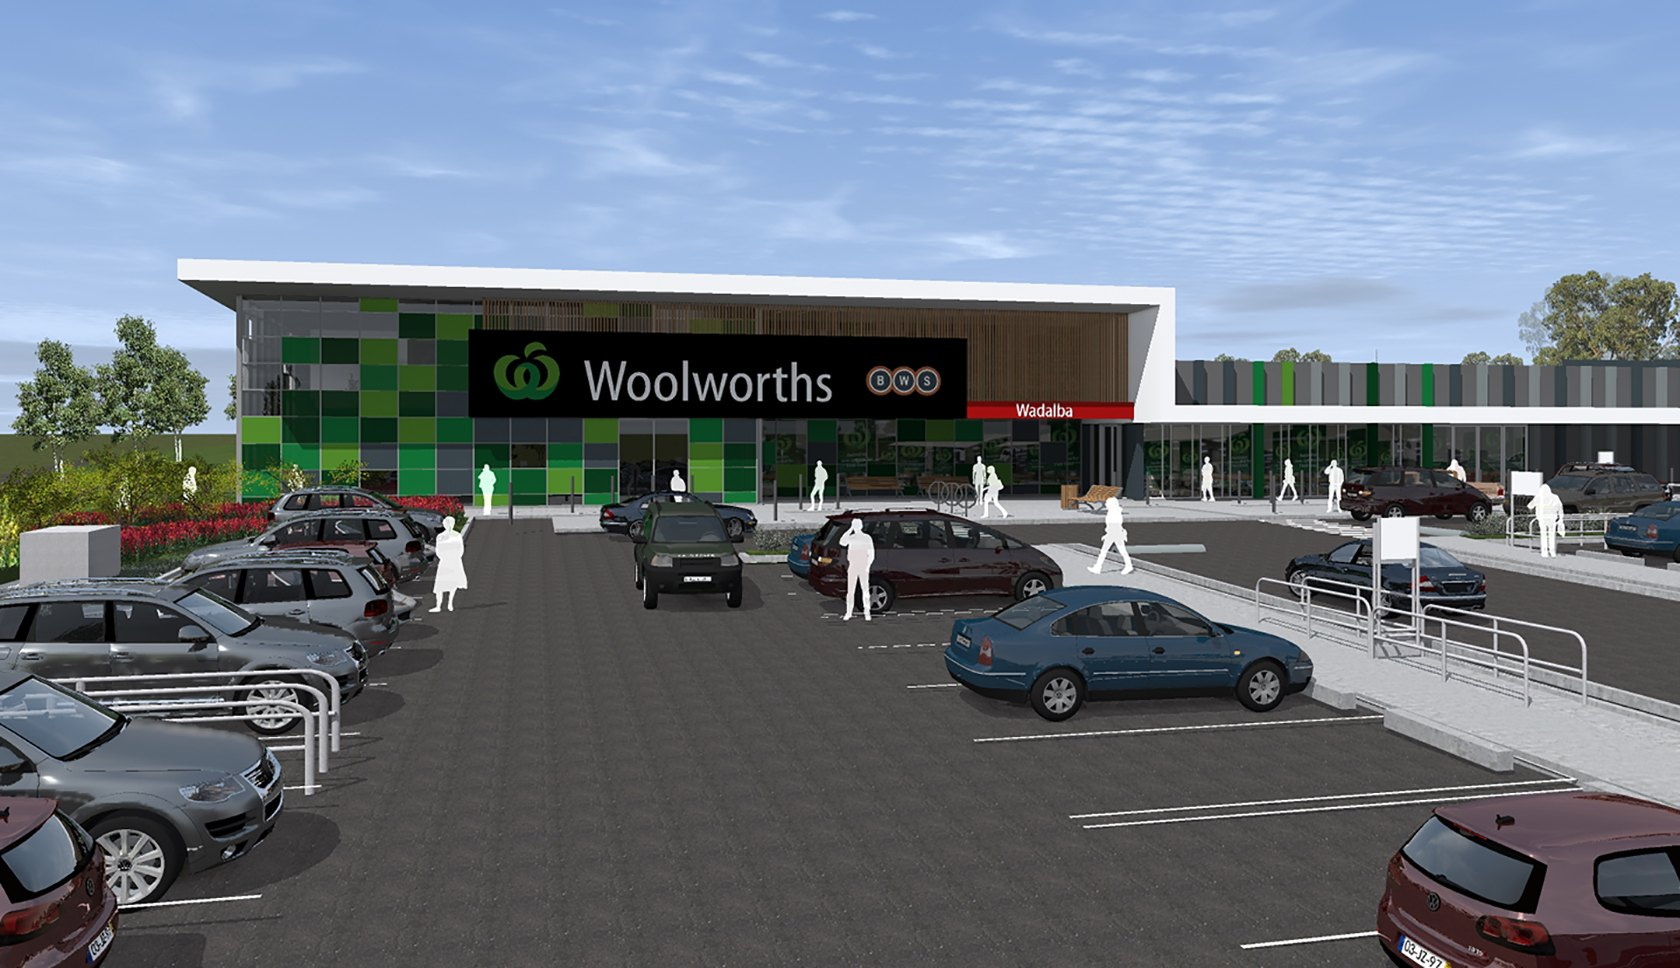 Woolworths Wadalba drawing of the retail outlets building from the front entrance and car park